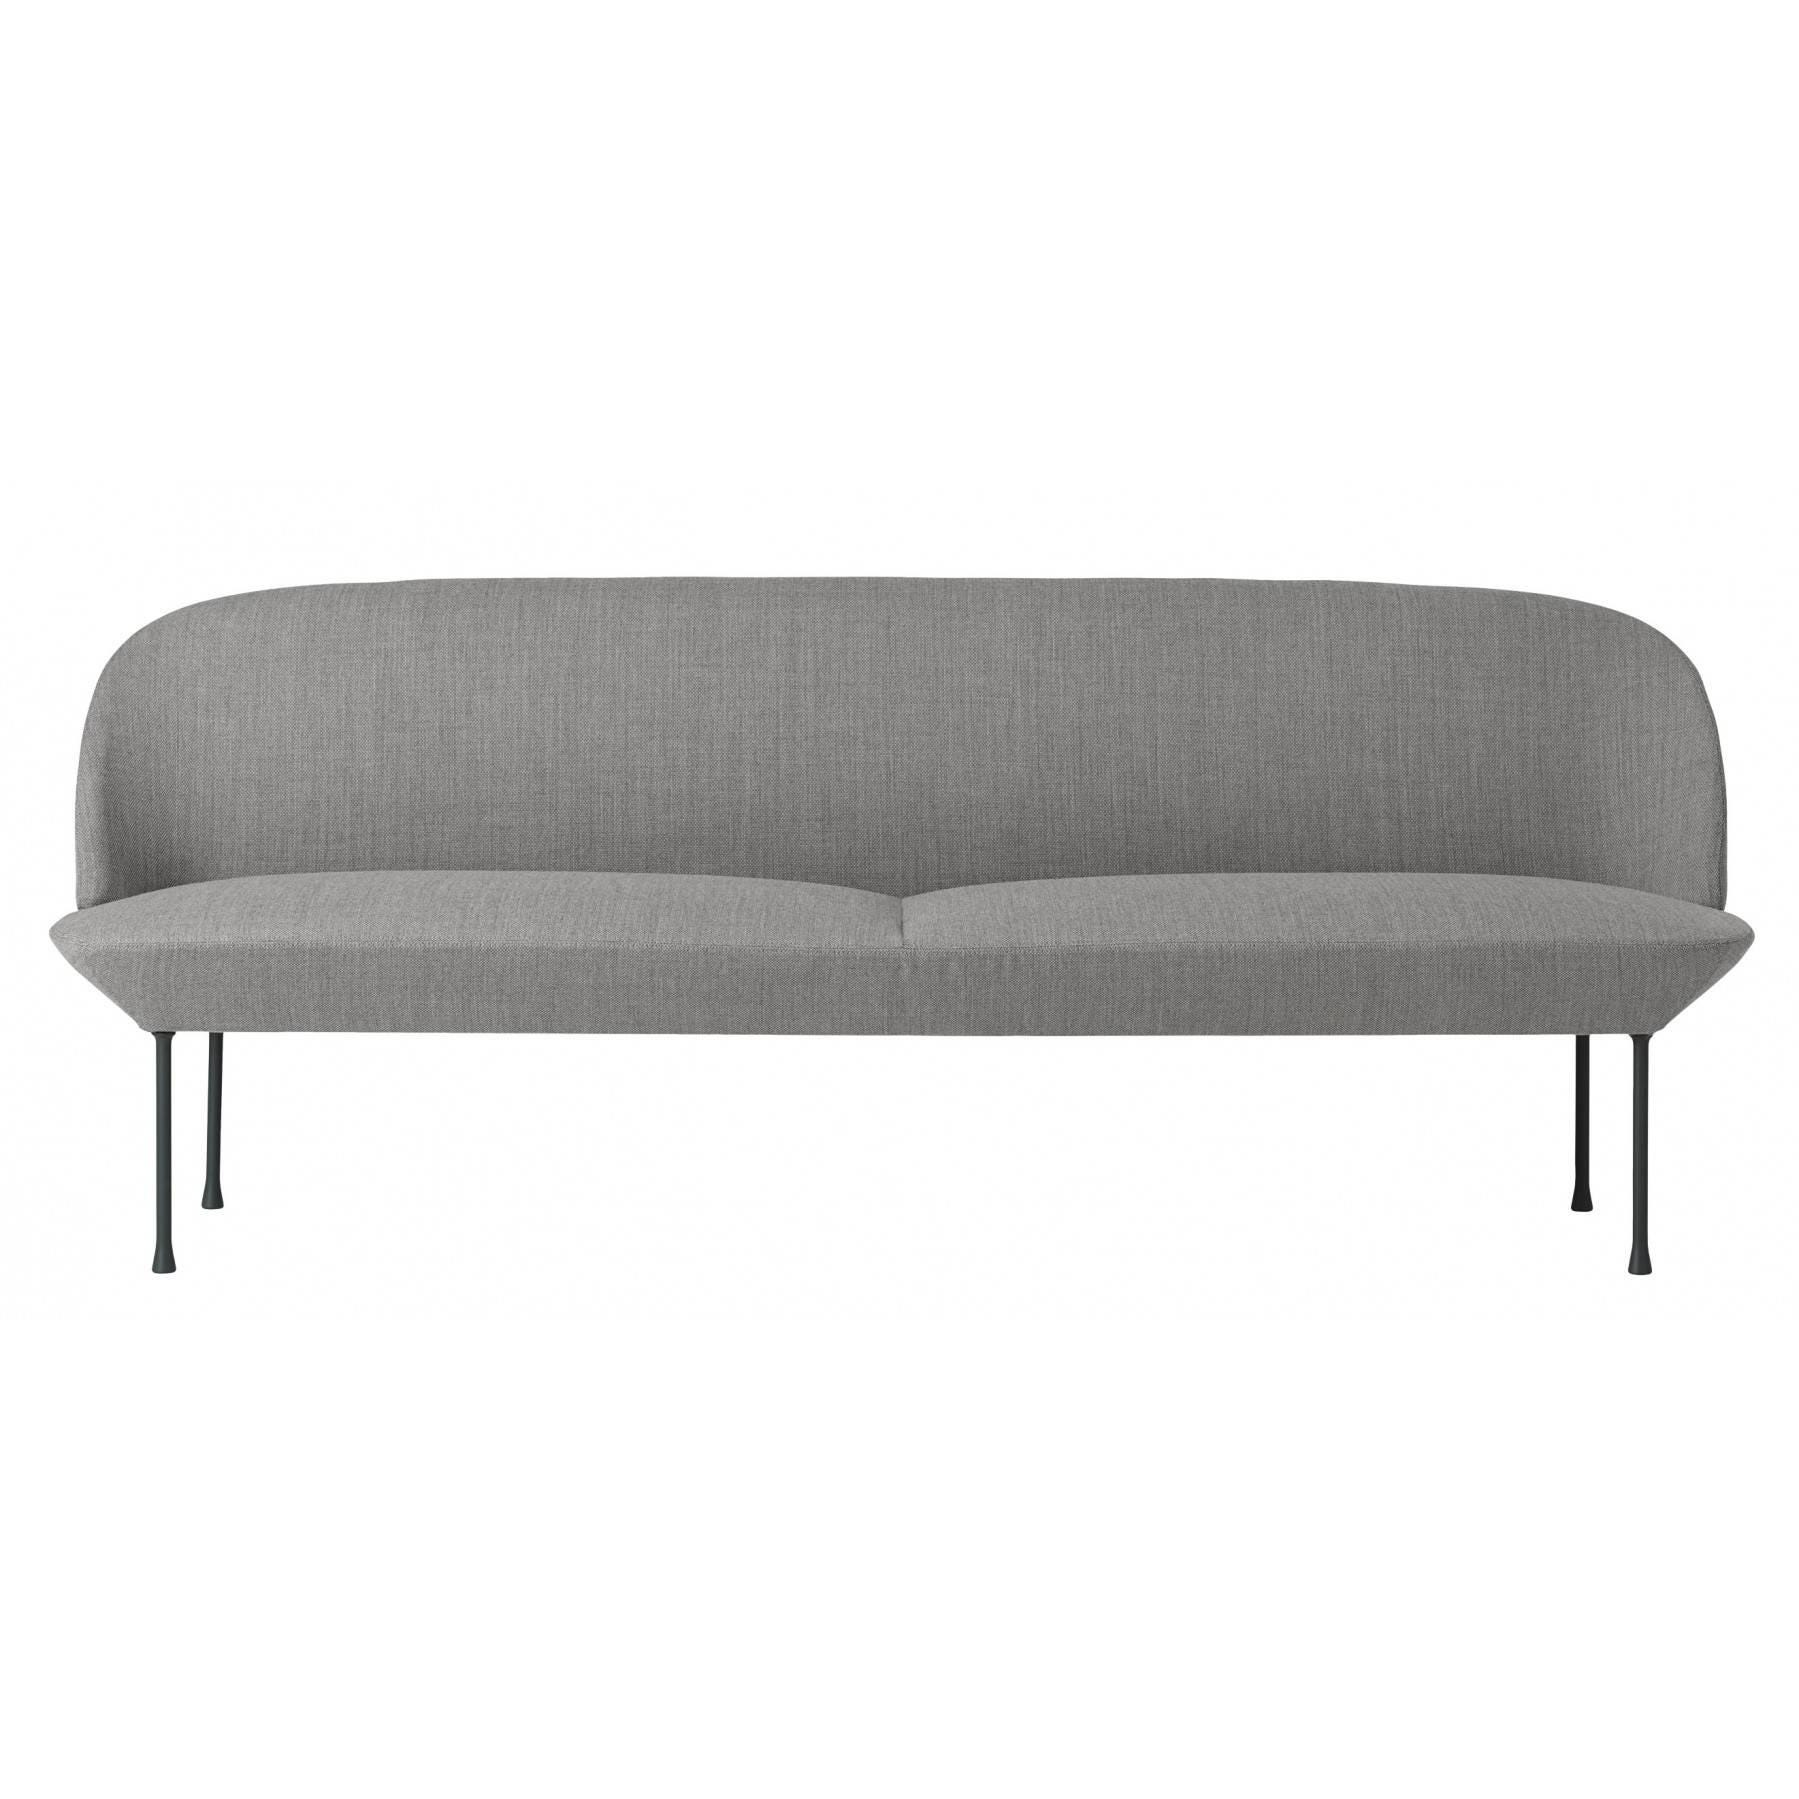 muuto oslo 3 seater sofa gr shop canada. Black Bedroom Furniture Sets. Home Design Ideas